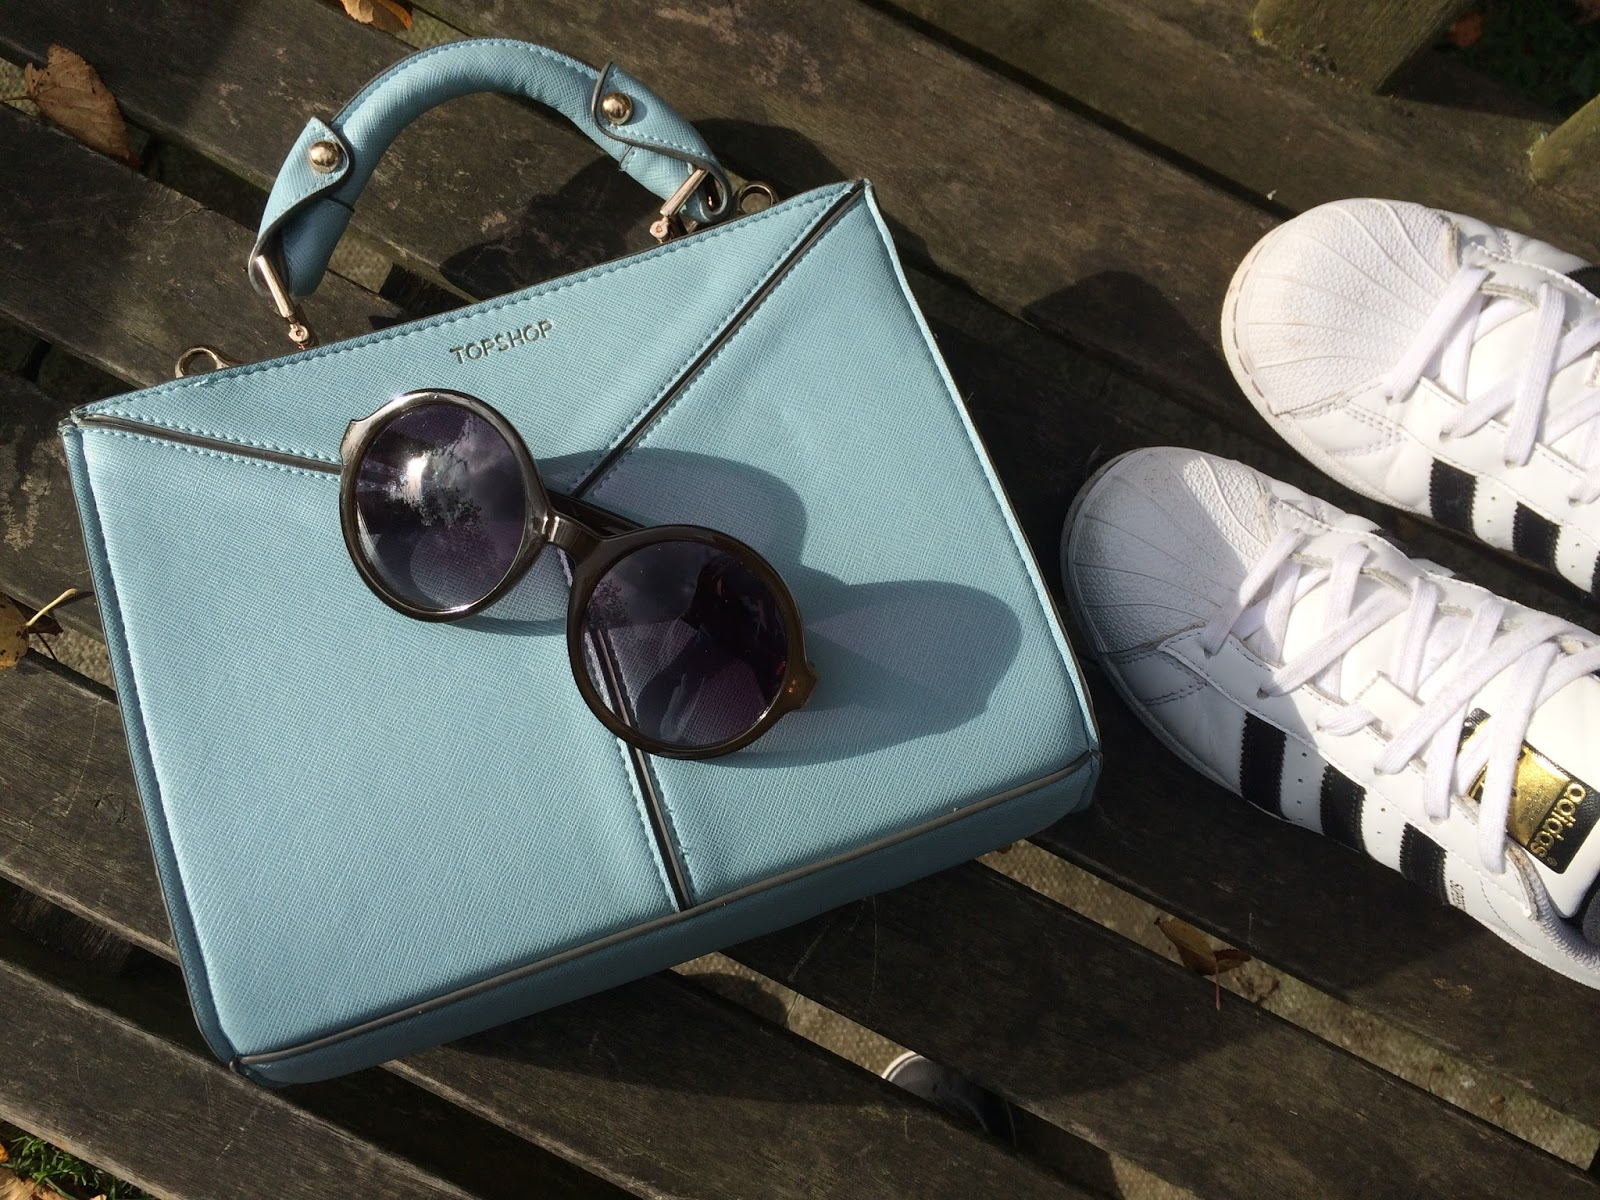 ootd, outfit post, fashion blogger, accessories flat lay, topshop mini bag, sunglasses, adidas trainers